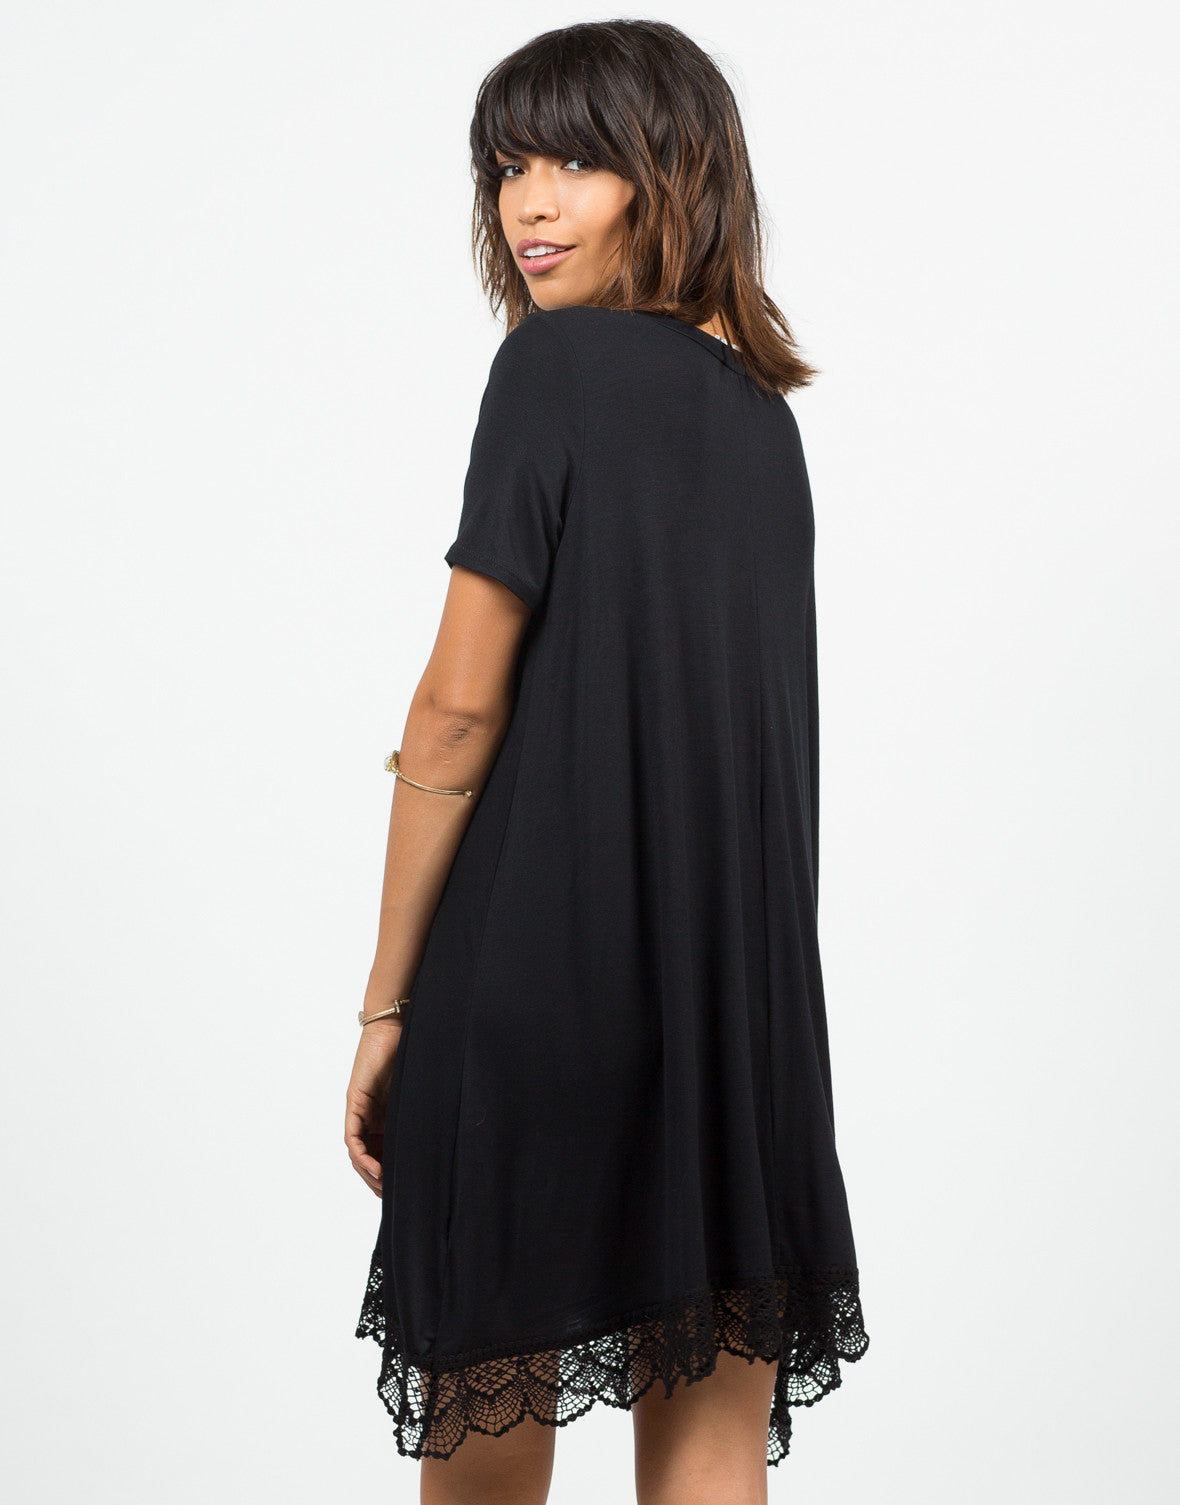 Back View of Crochet T-Shirt Dress